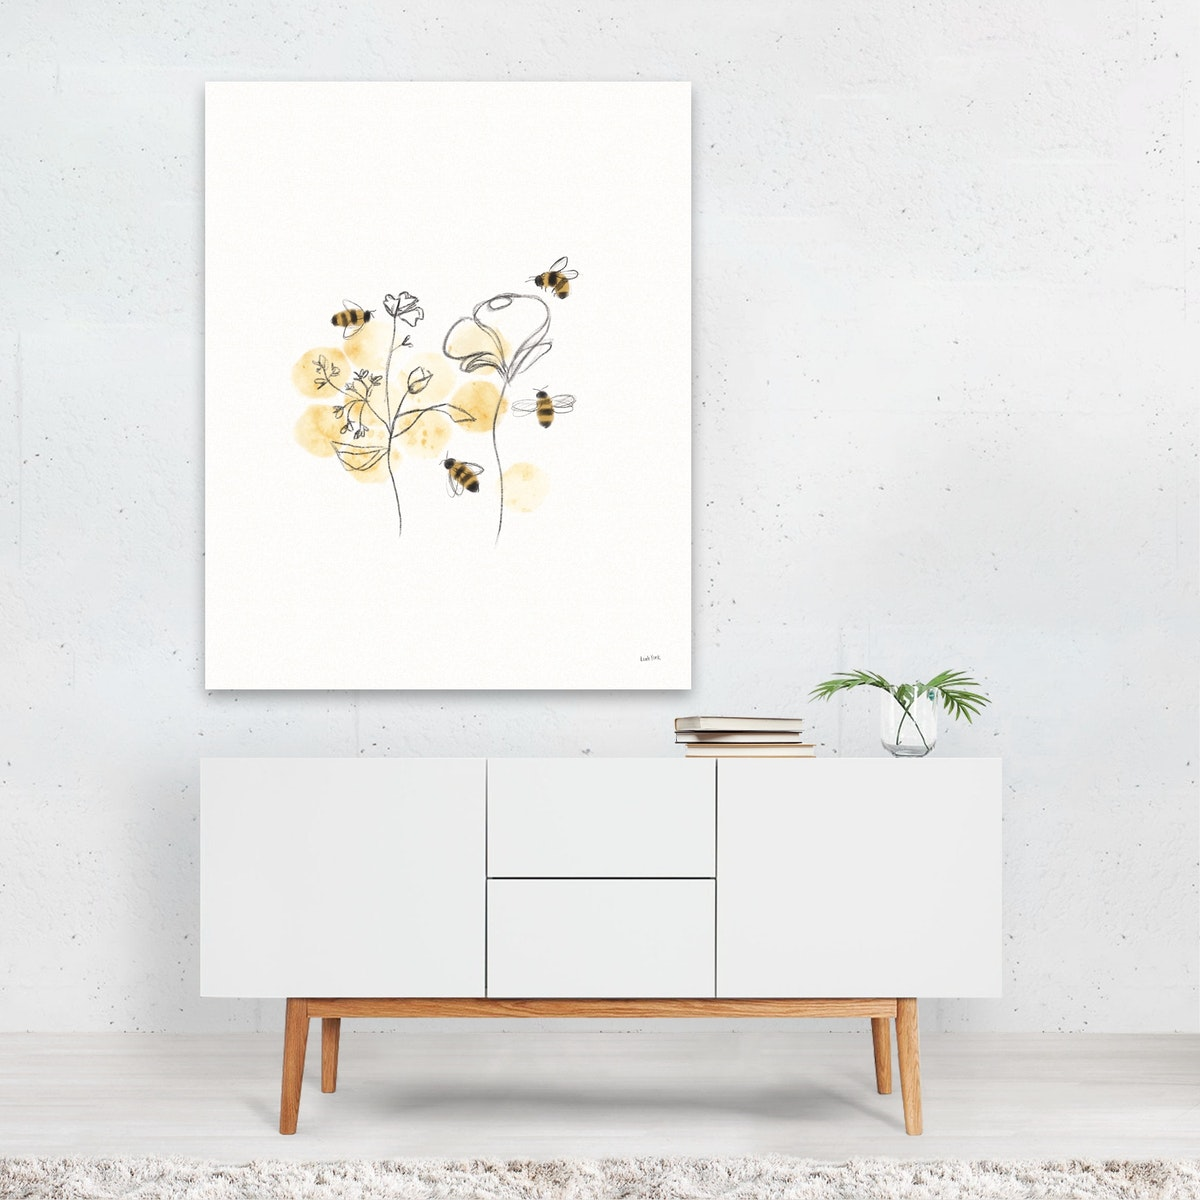 Bees and Botanicals III